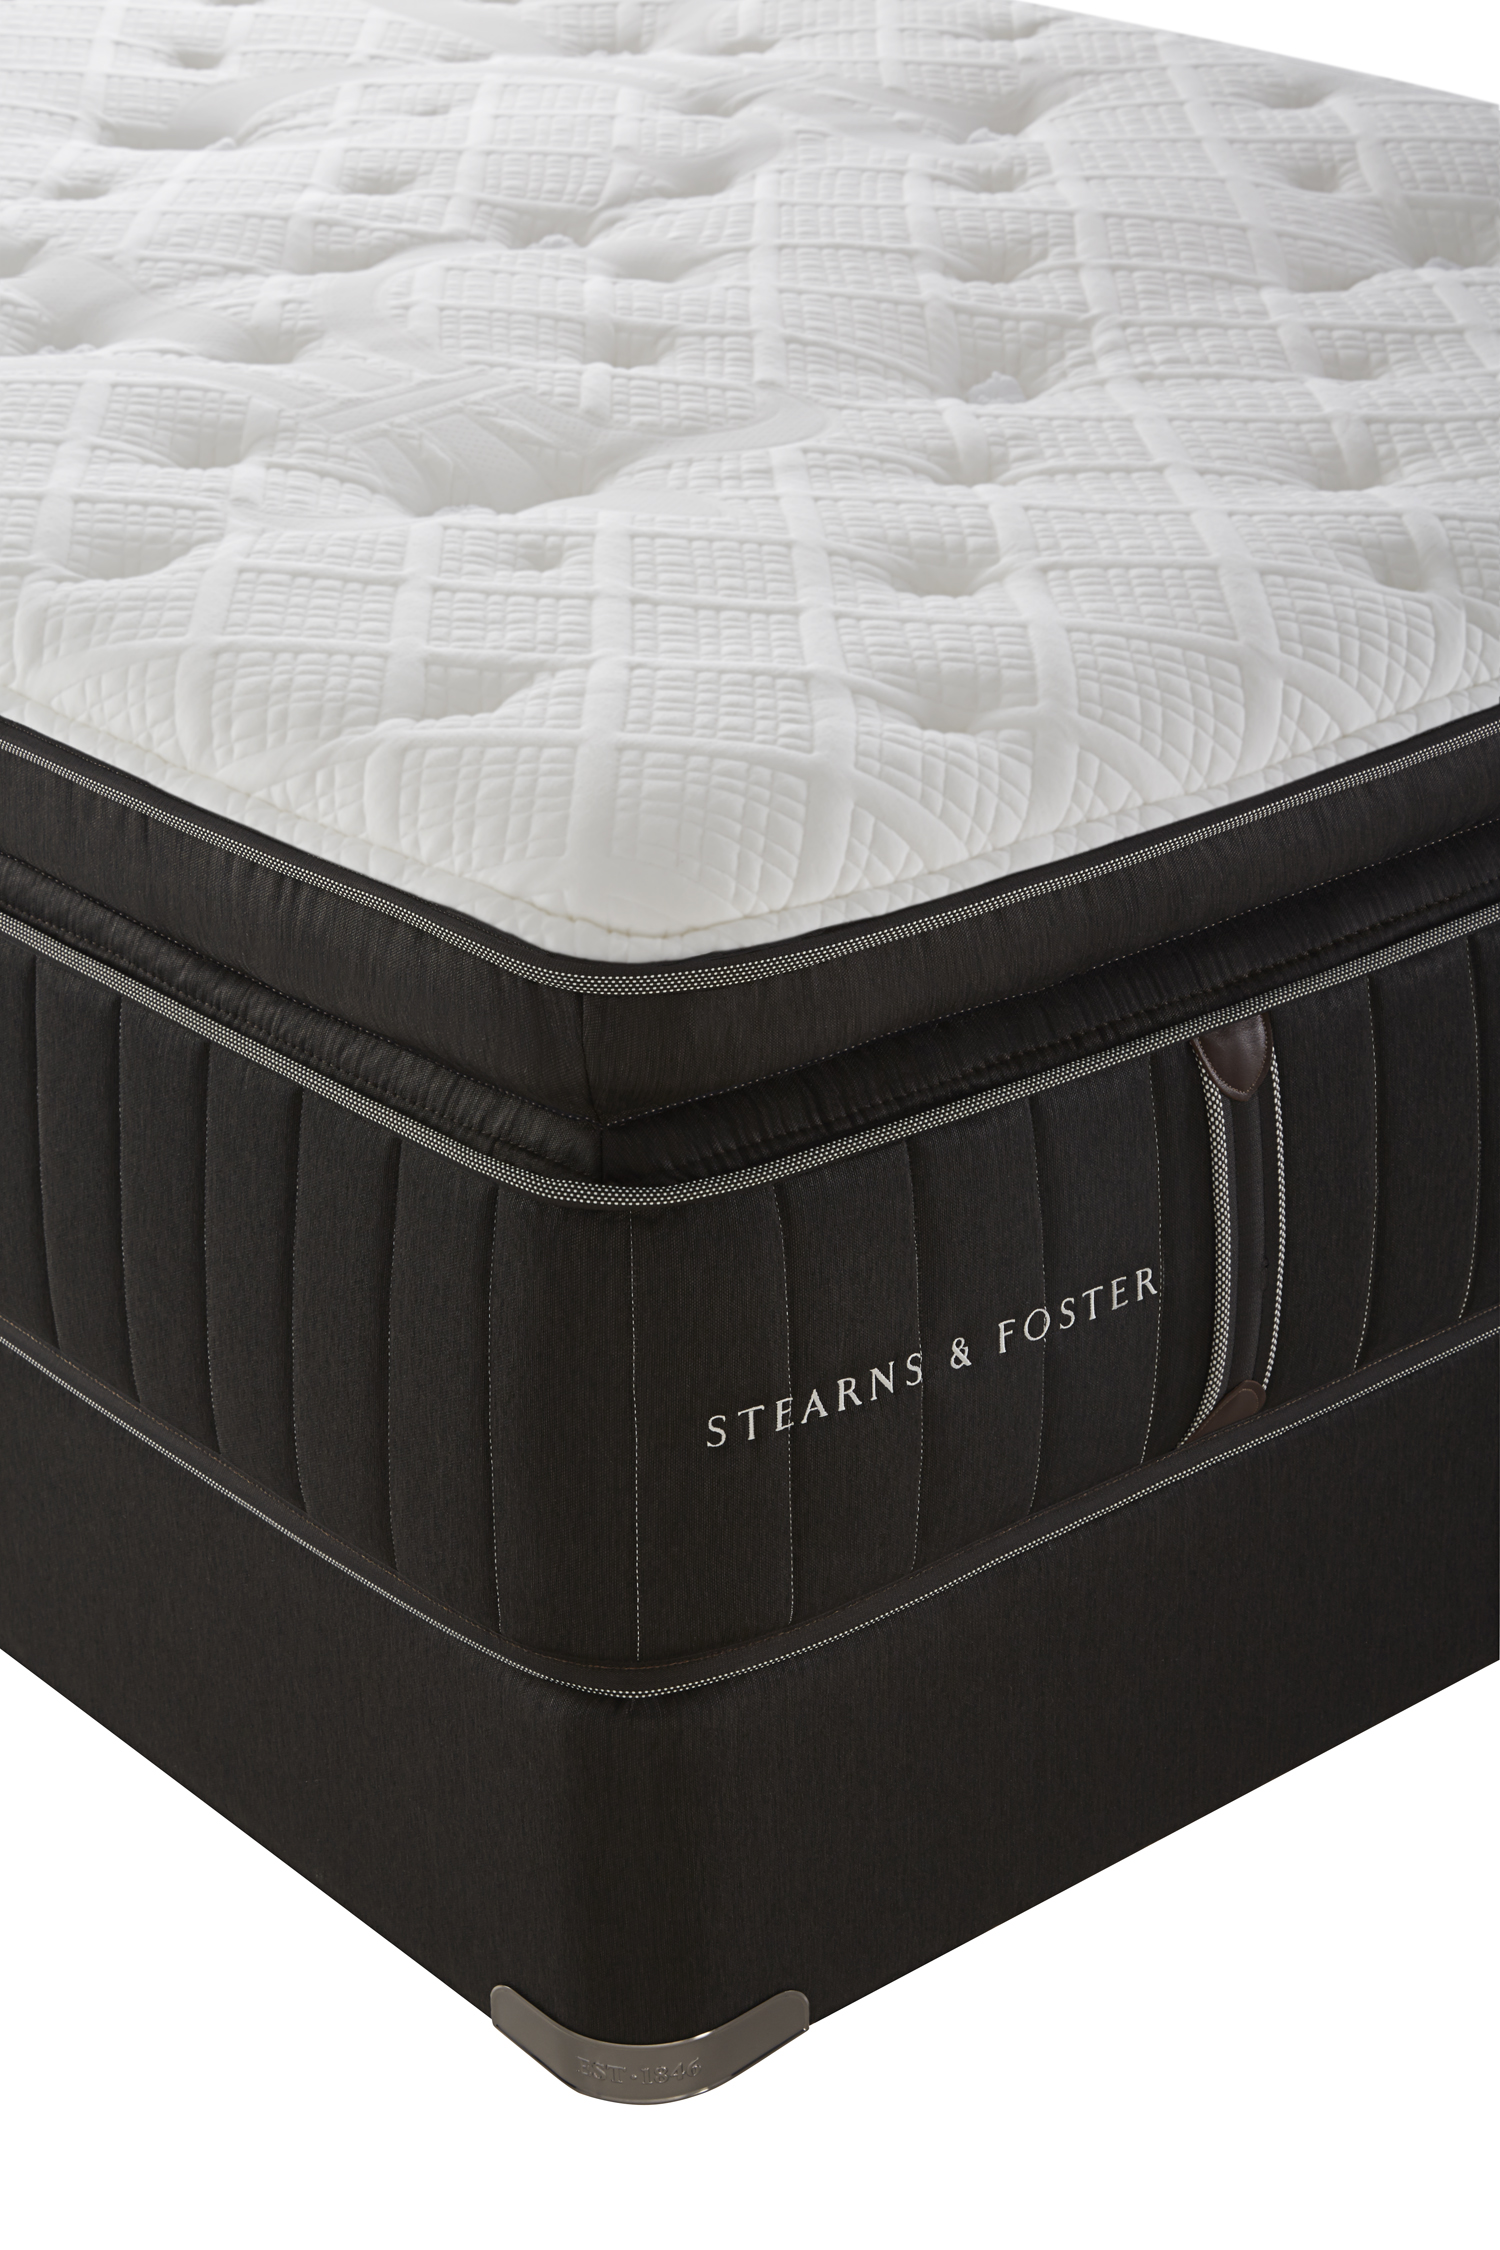 stearns and foster luxury firm euro pillowtop reviews